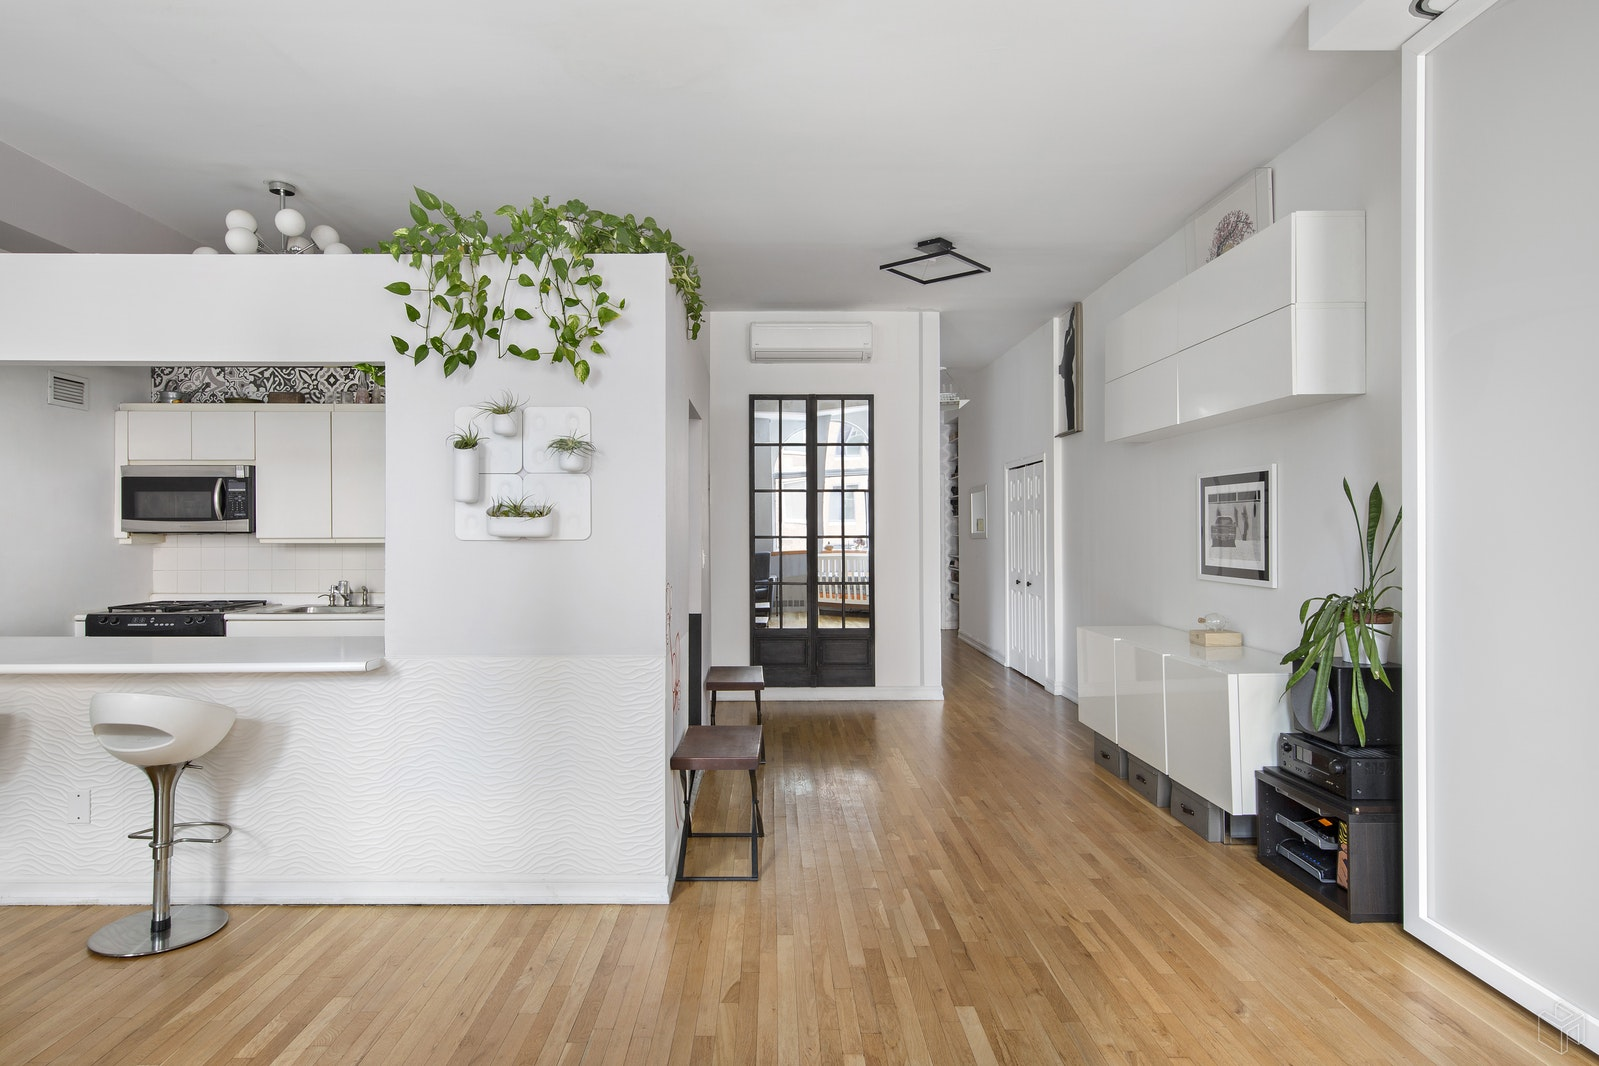 125 East 12th Street 4h, East Village, NYC, 10003, $1,399,000, Sold Property, Halstead Real Estate, Photo 3